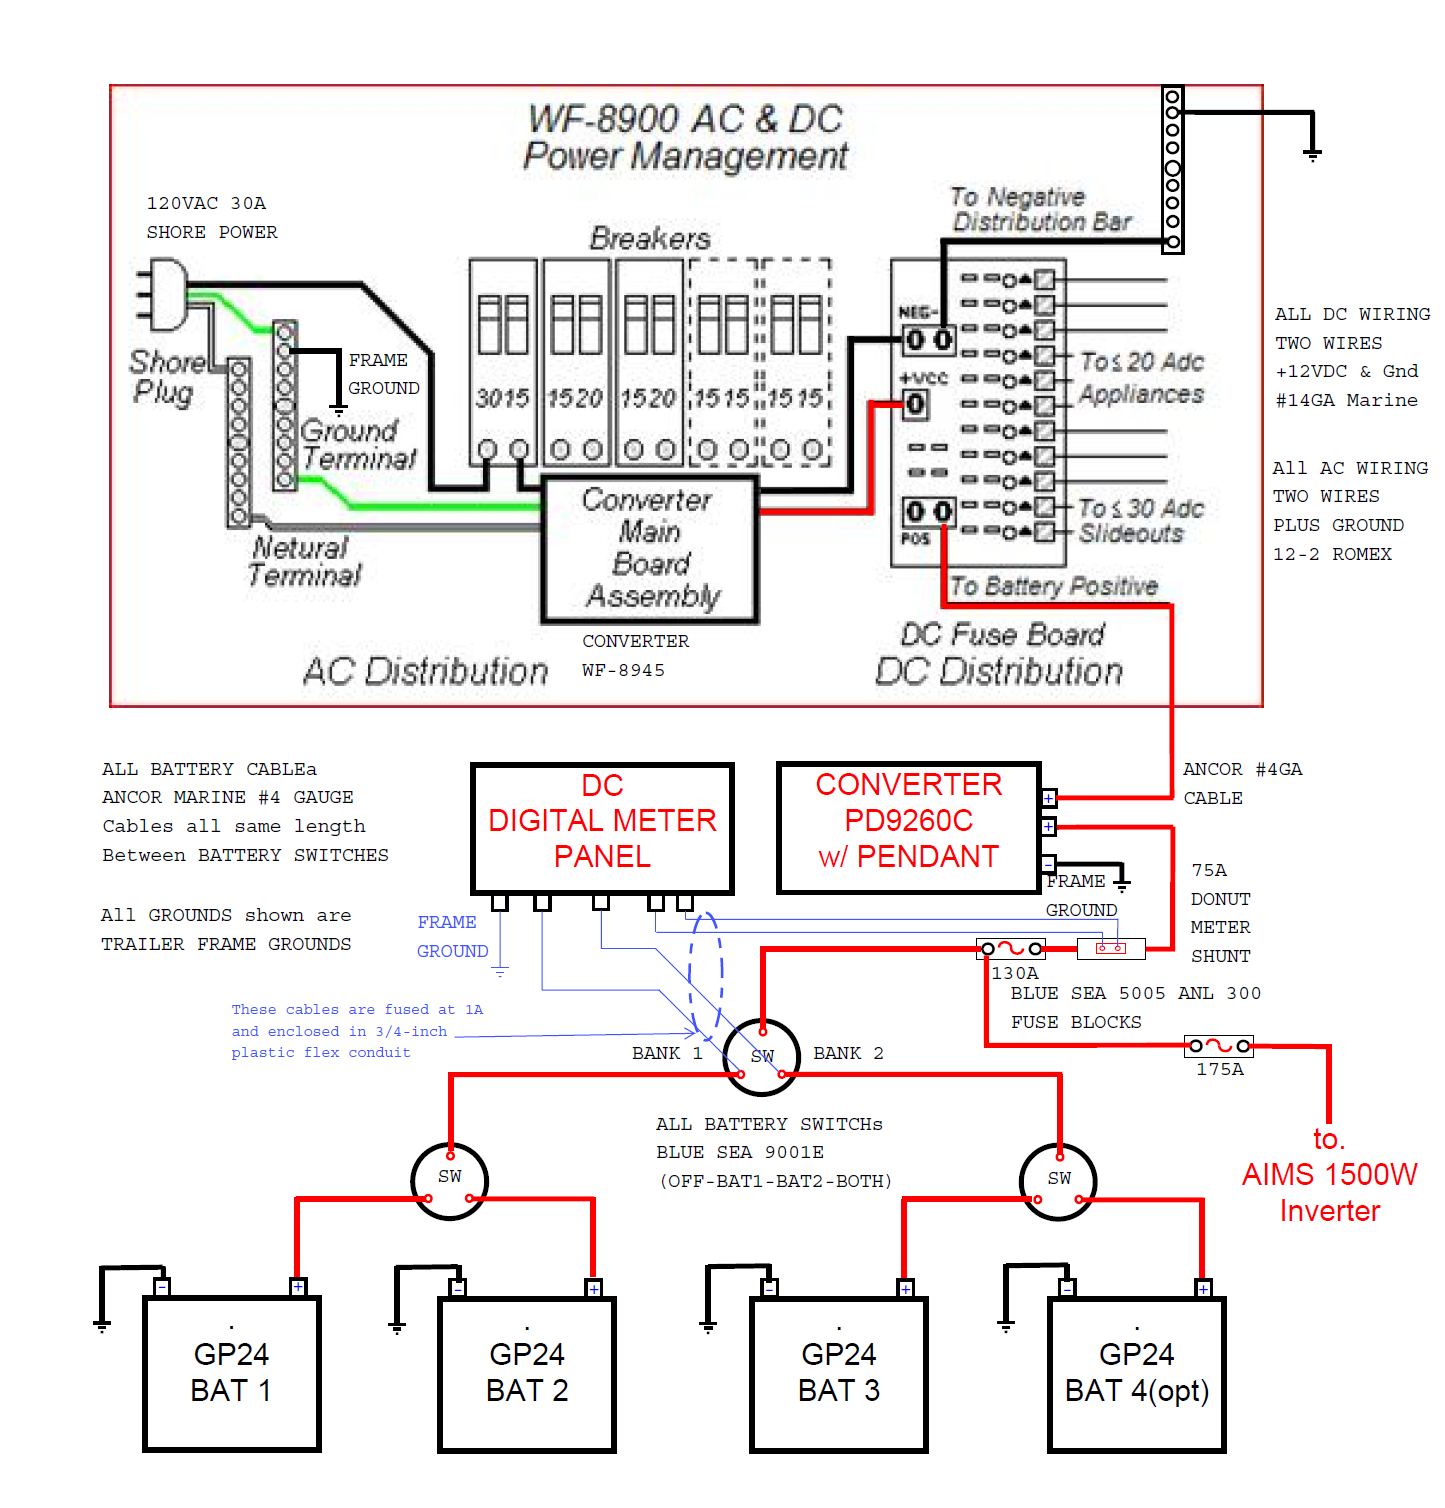 Power Converter Wiring Diagram | Wiring Diagram - Progressive Dynamics Power Converter Wiring Diagram